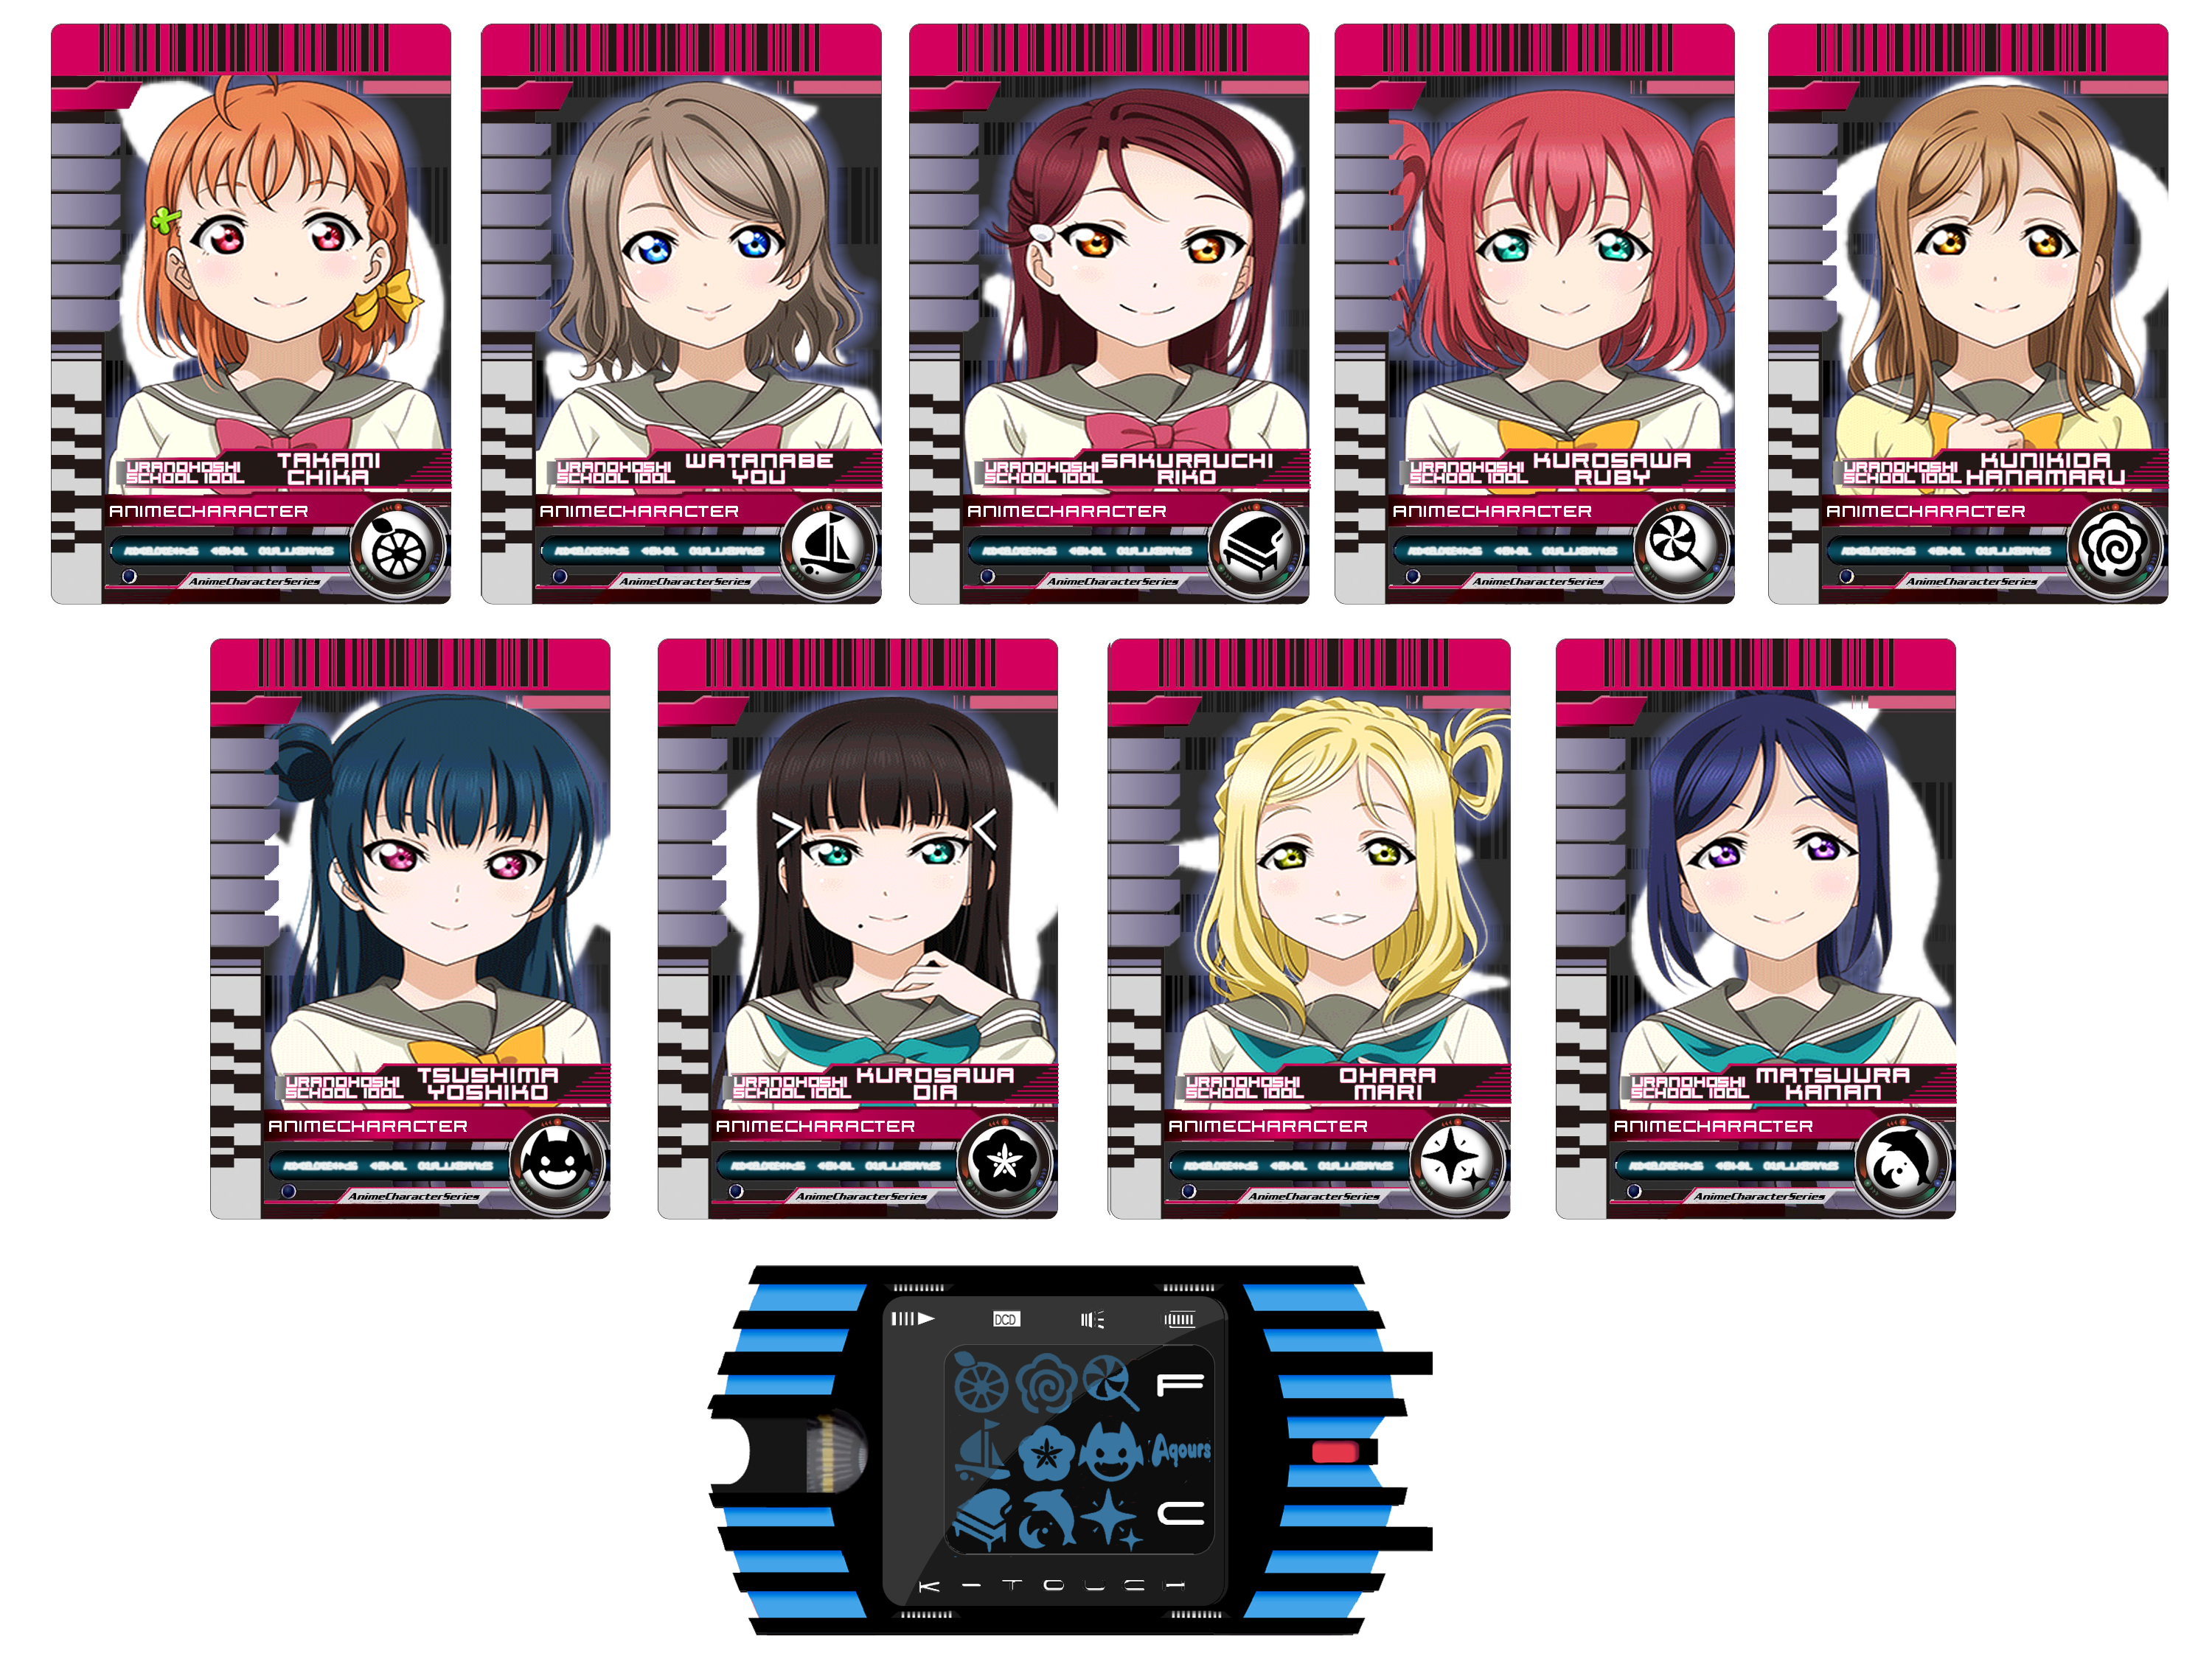 Decade Card and K-Touch (Aqours) by Decade1945 on DeviantArt